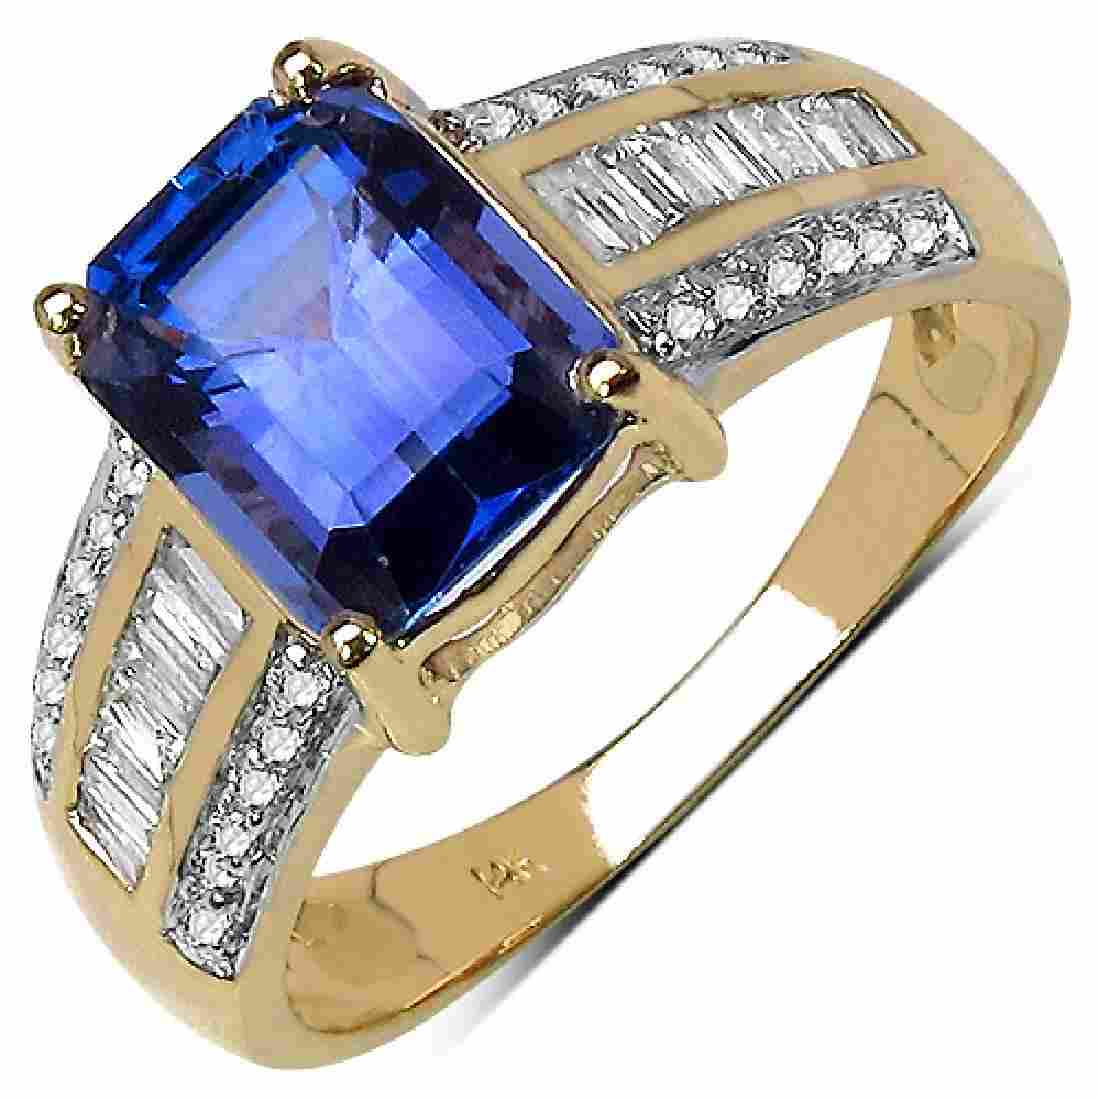 2.76 CTW Tanzanite & 0.44 CTW Diamond Ring 14K Yellow